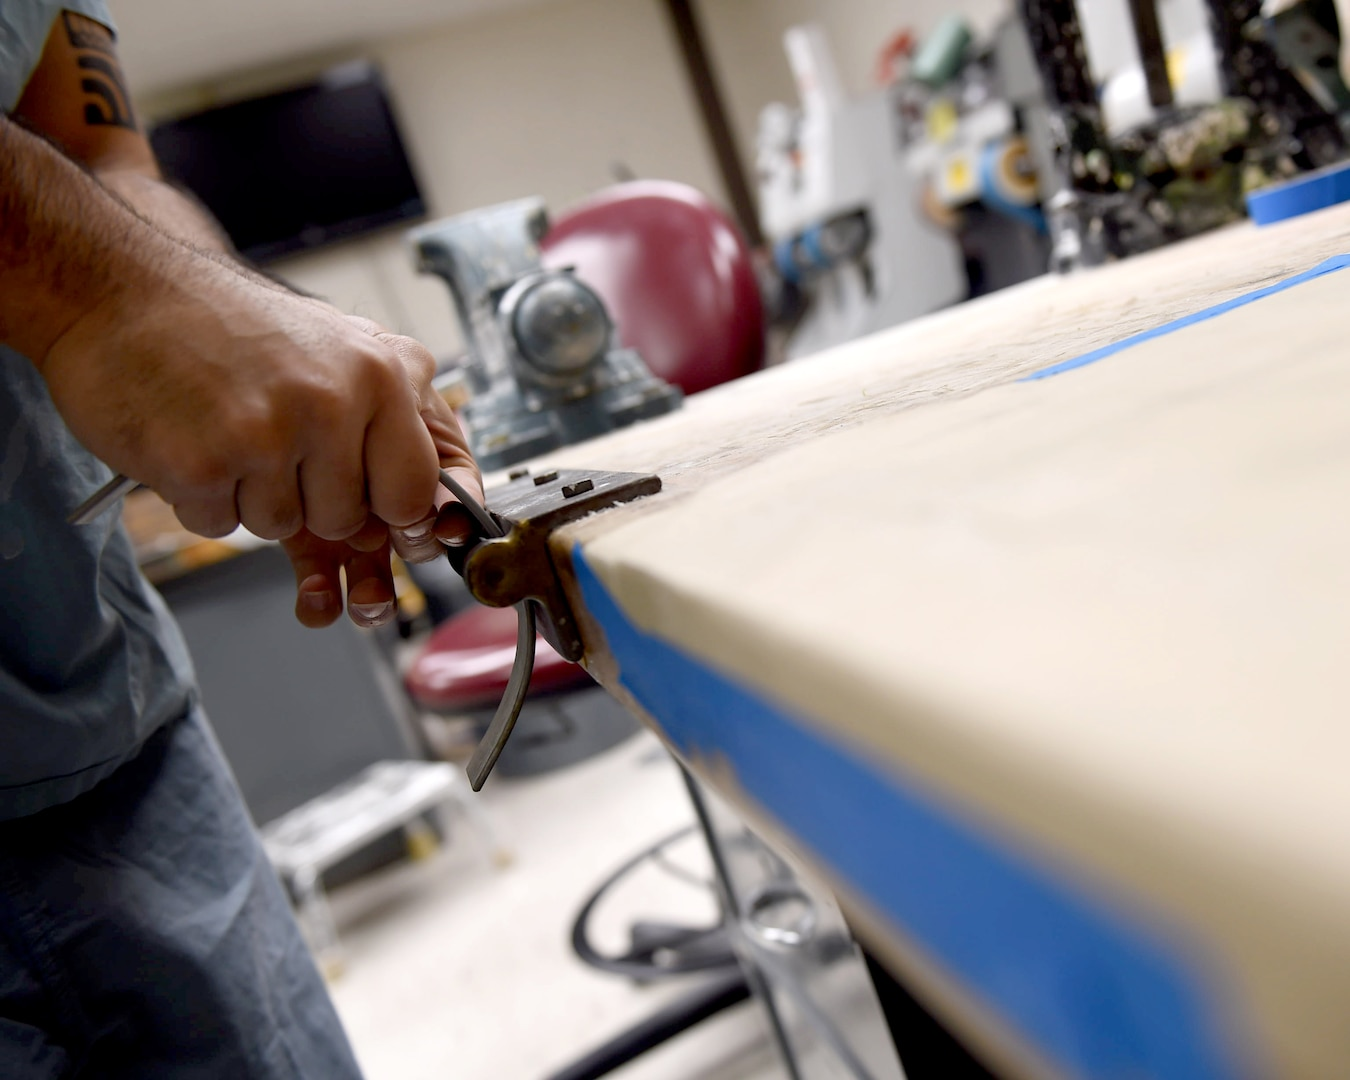 Staff Sgt. Kenneth Rivera, a student in the orthotics program, bends metal for a leg brace at the Wilford Hall Ambulatory Surgical Center, Joint Base San Antonio-Lackland, Texas, Oct. 19, 2016.(U.S. Air Force photo/Staff Sgt. Jerilyn Quintanilla)